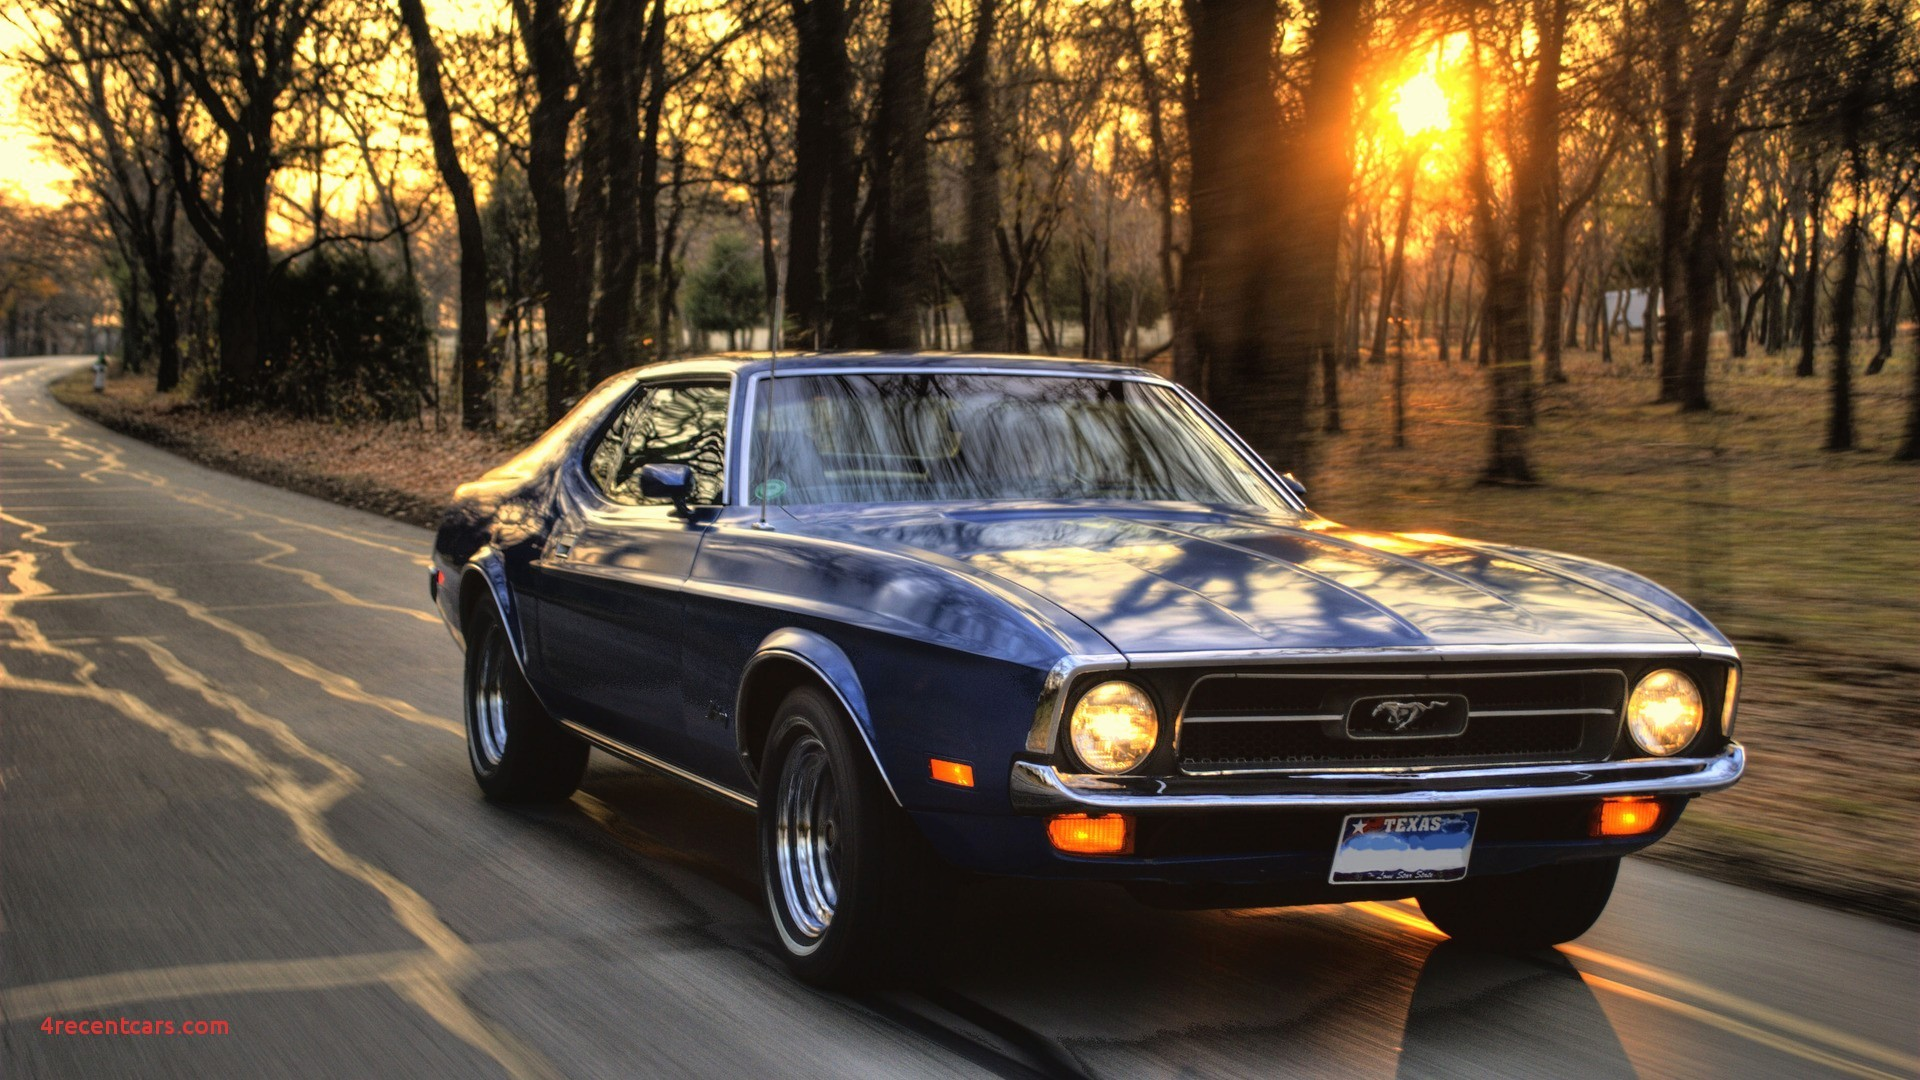 1920x1080 1920x1080 Muscle Cars Hd Wallpapers Wallpaper Cave